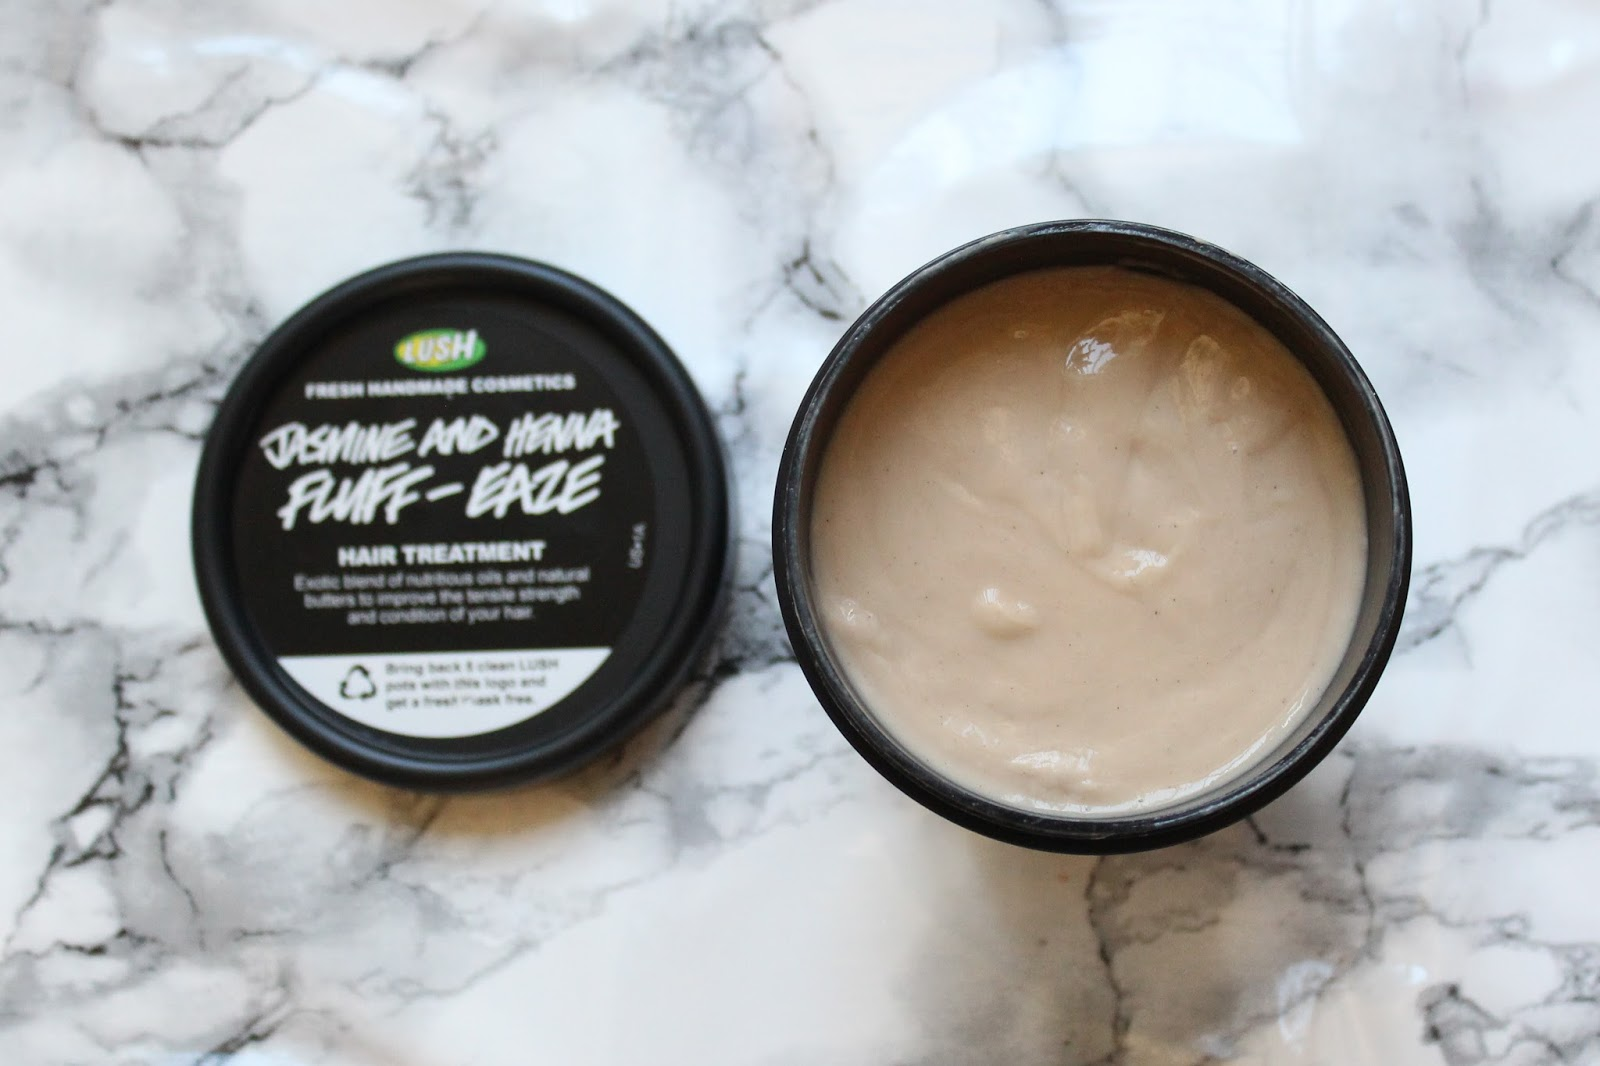 LUSH Jasmine & Henna Fluff Eaze Hair Treatment Review